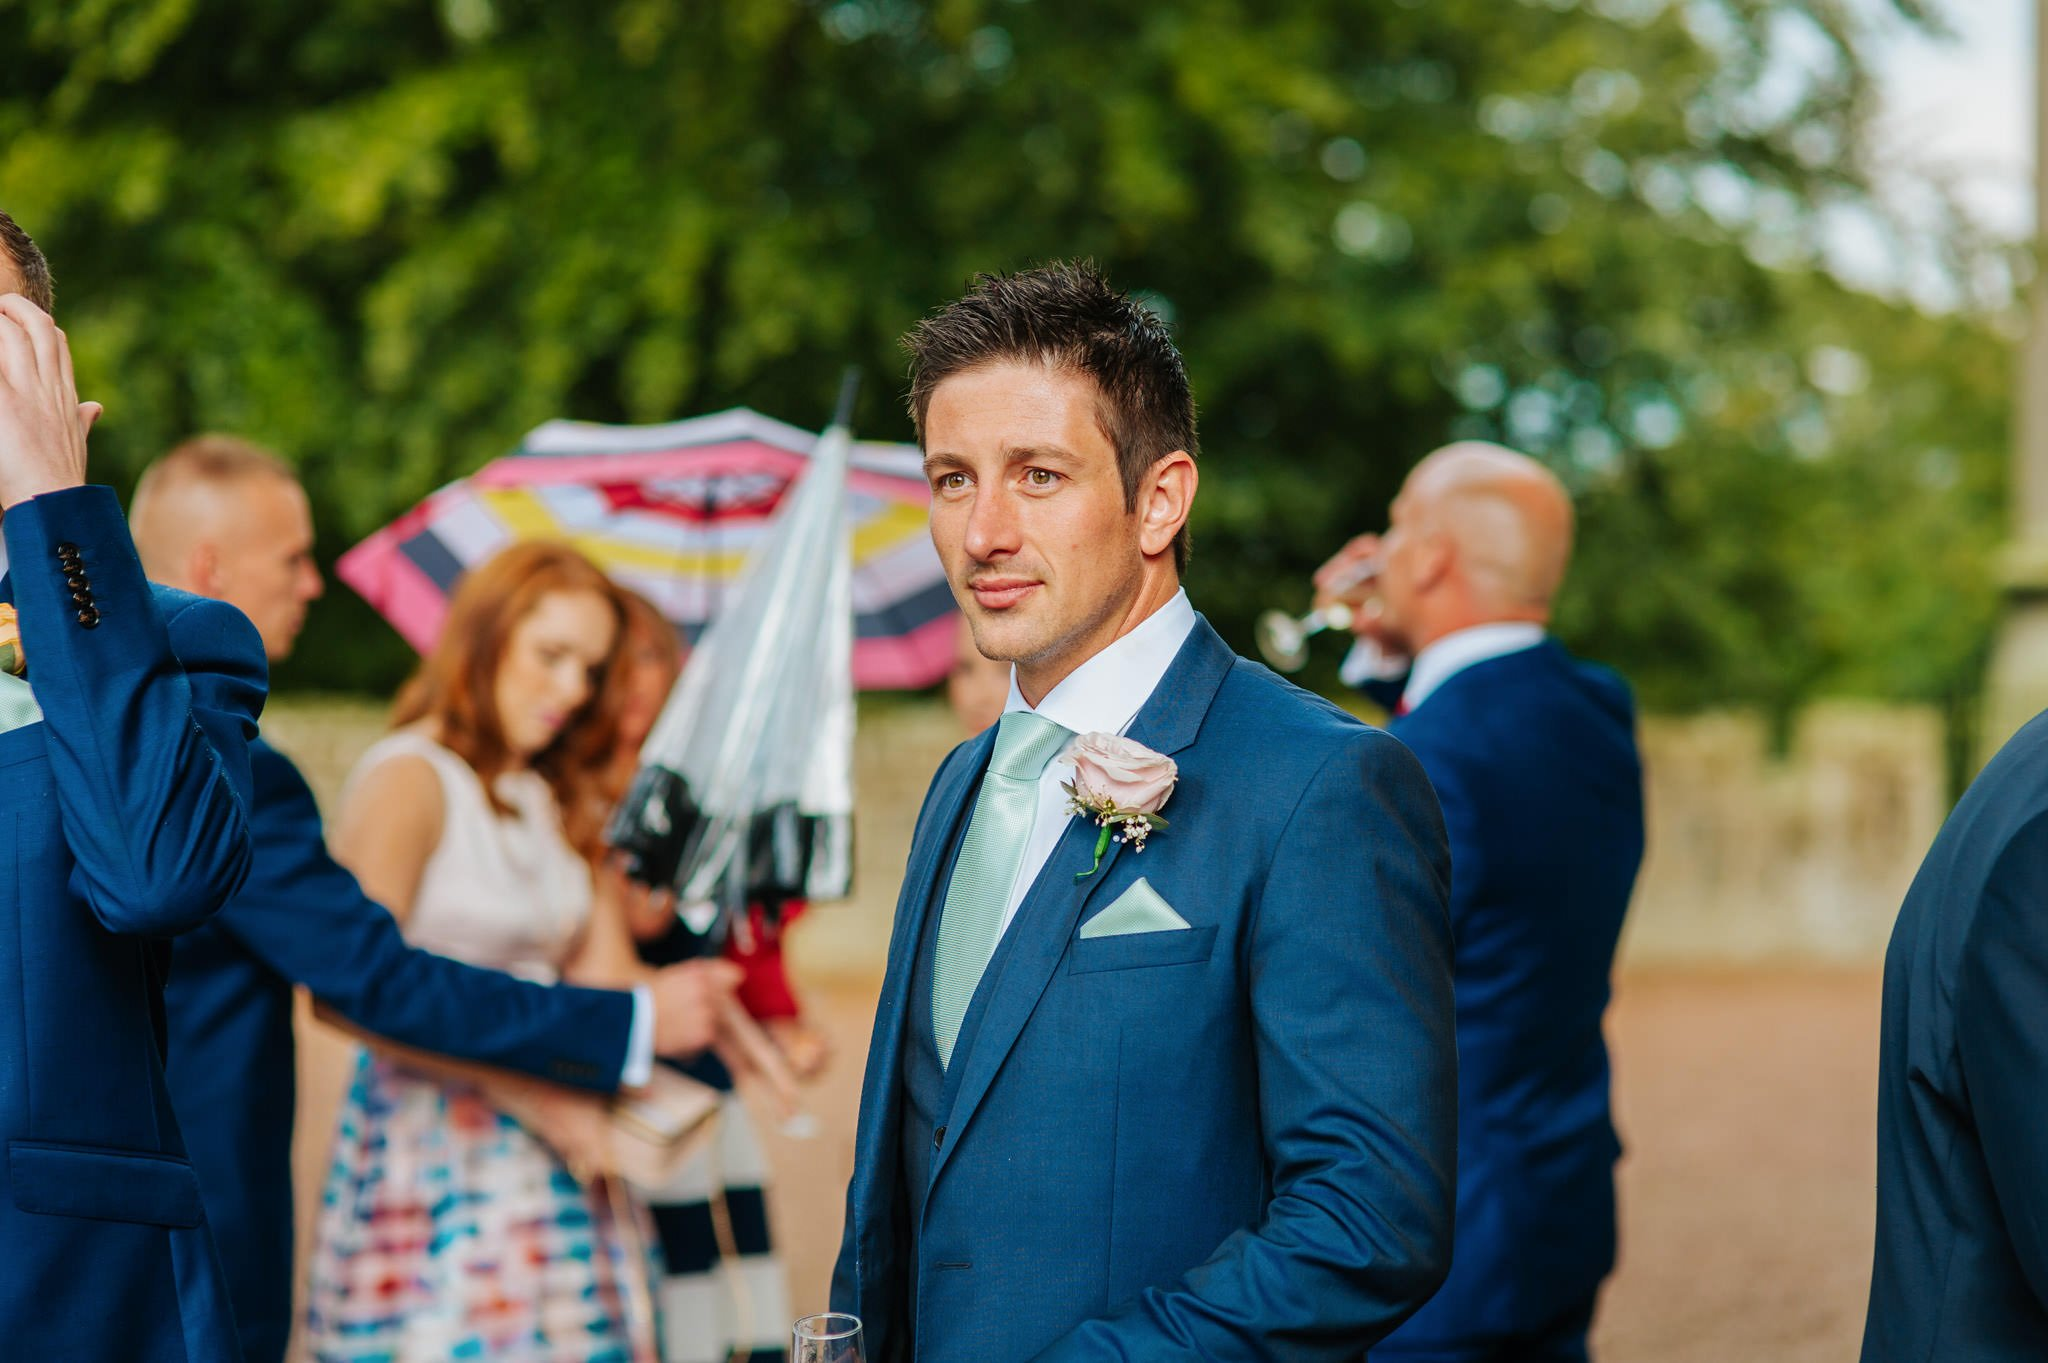 eastnor castle wedding pictures 54 - Eastnor Castle wedding photographer Herefordshire, West Midlands - Sarah + Dean